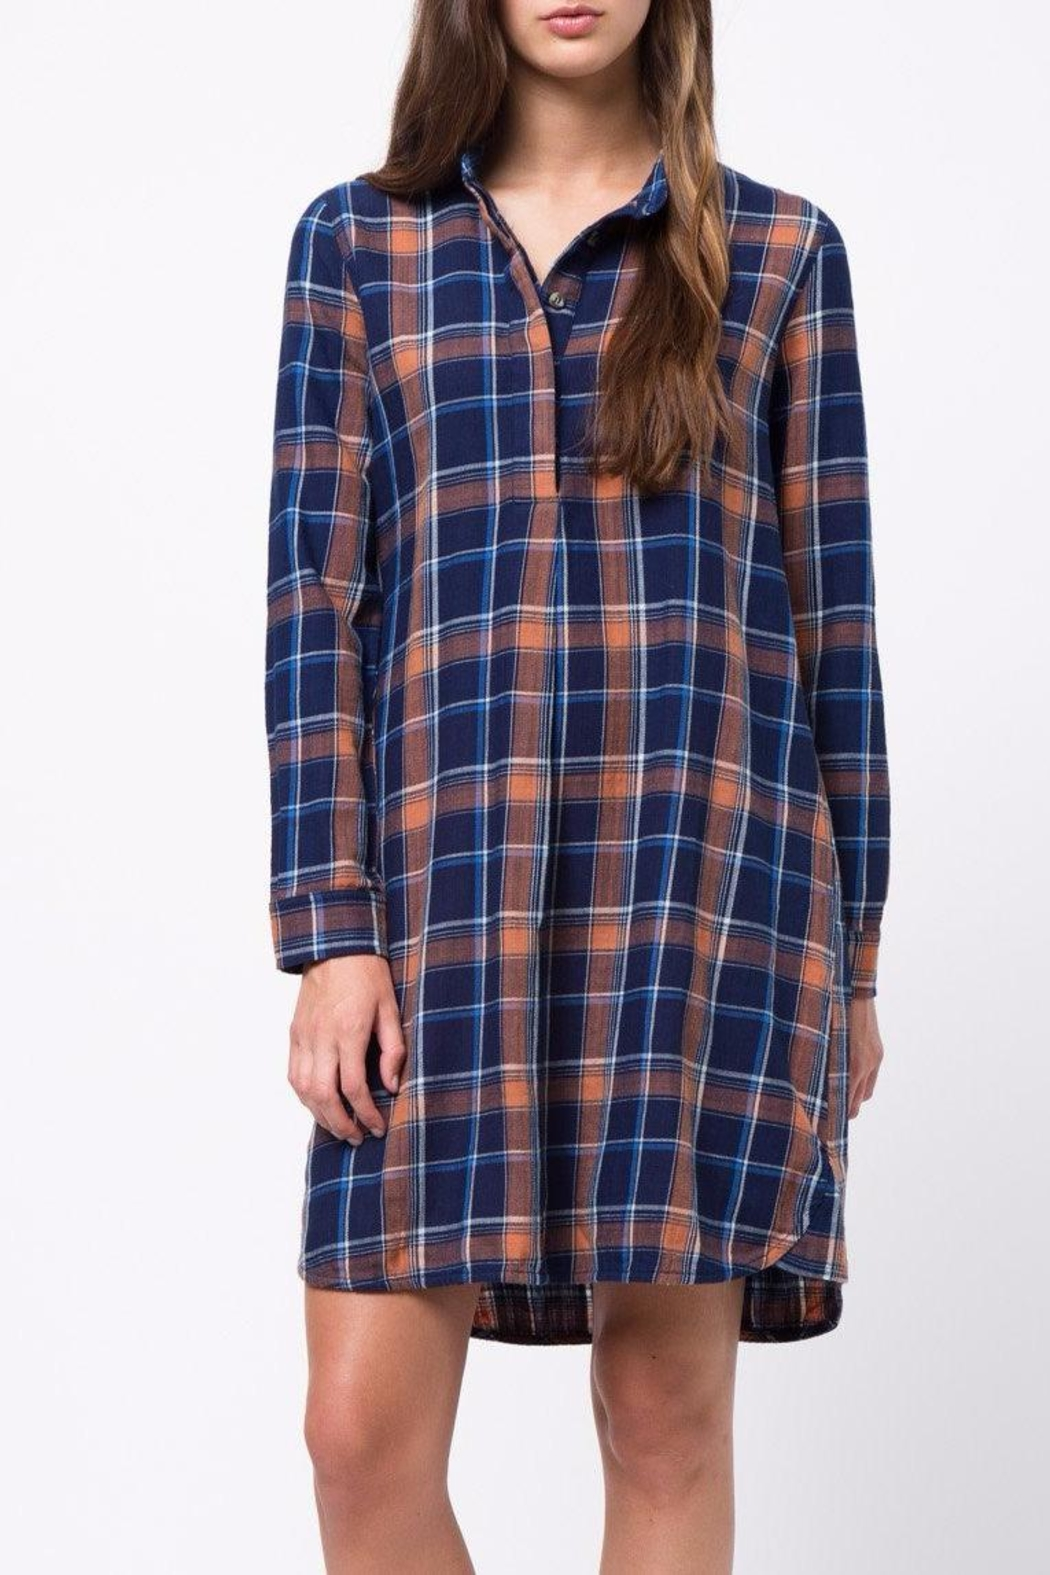 mo:vint Plaid Dress - Back Cropped Image